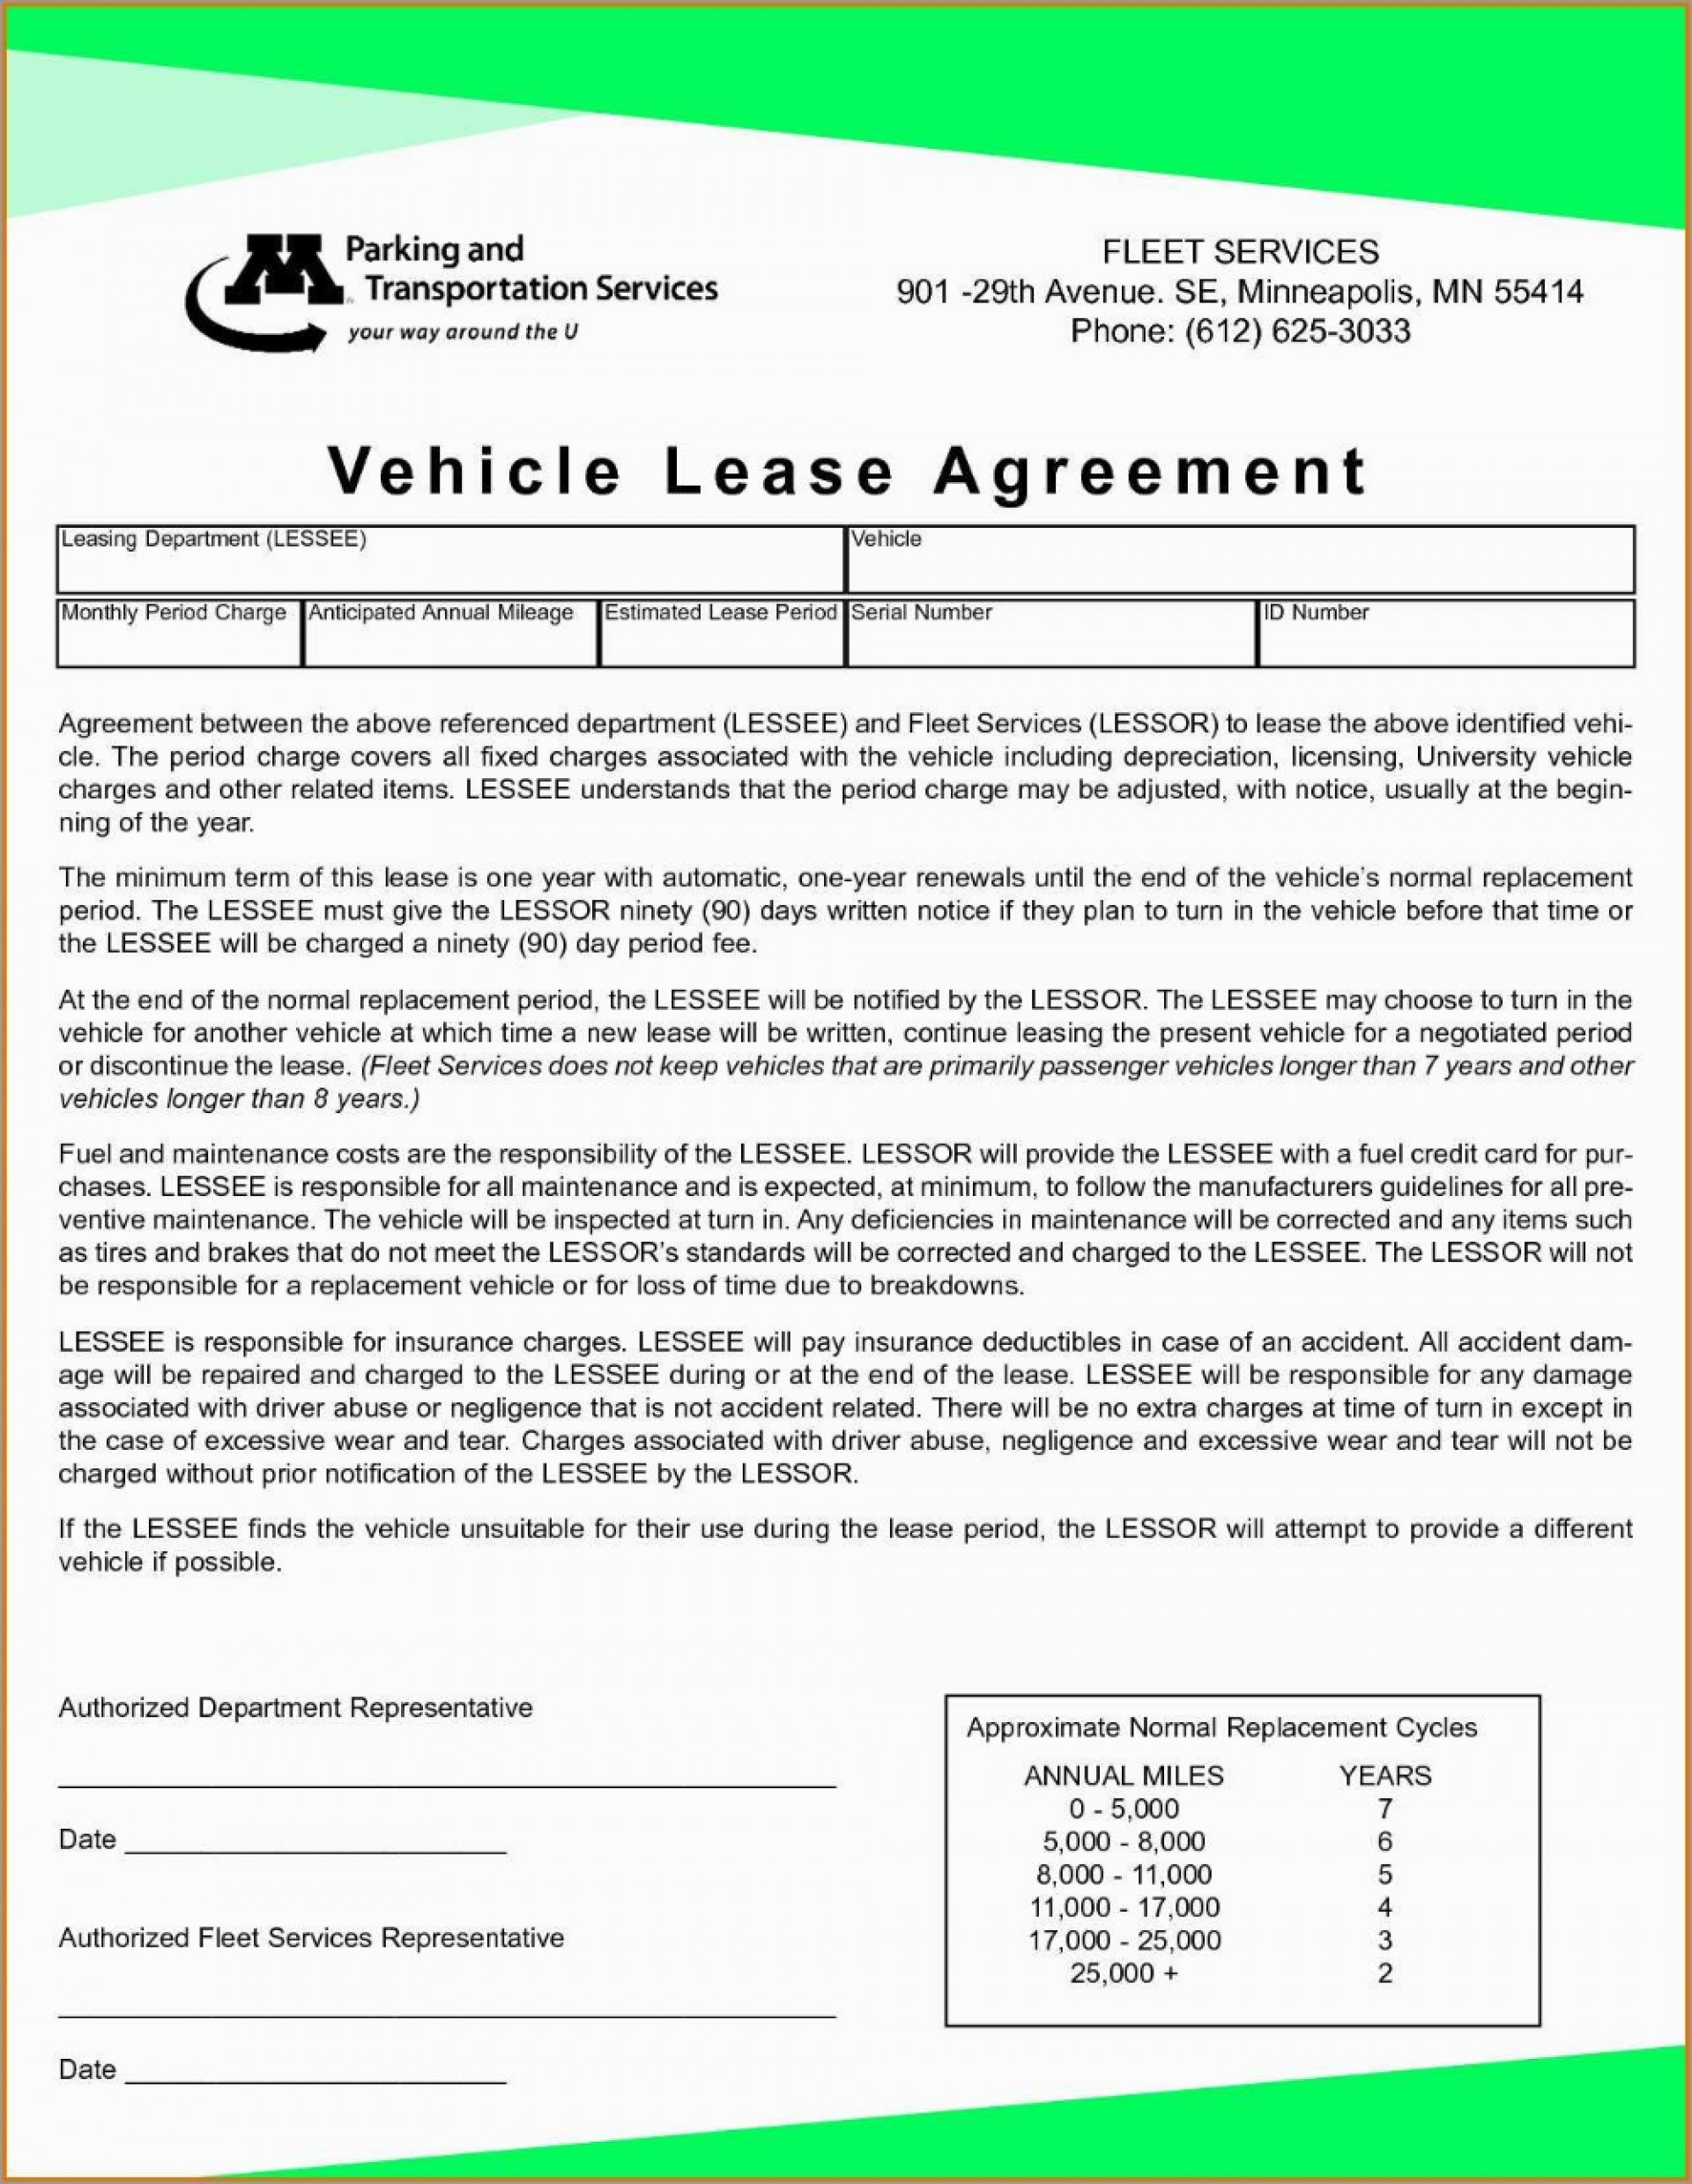 001 Marvelou Car Rental Agreement Template Highest Clarity  Vehicle Rent To Own South Africa Singapore1920